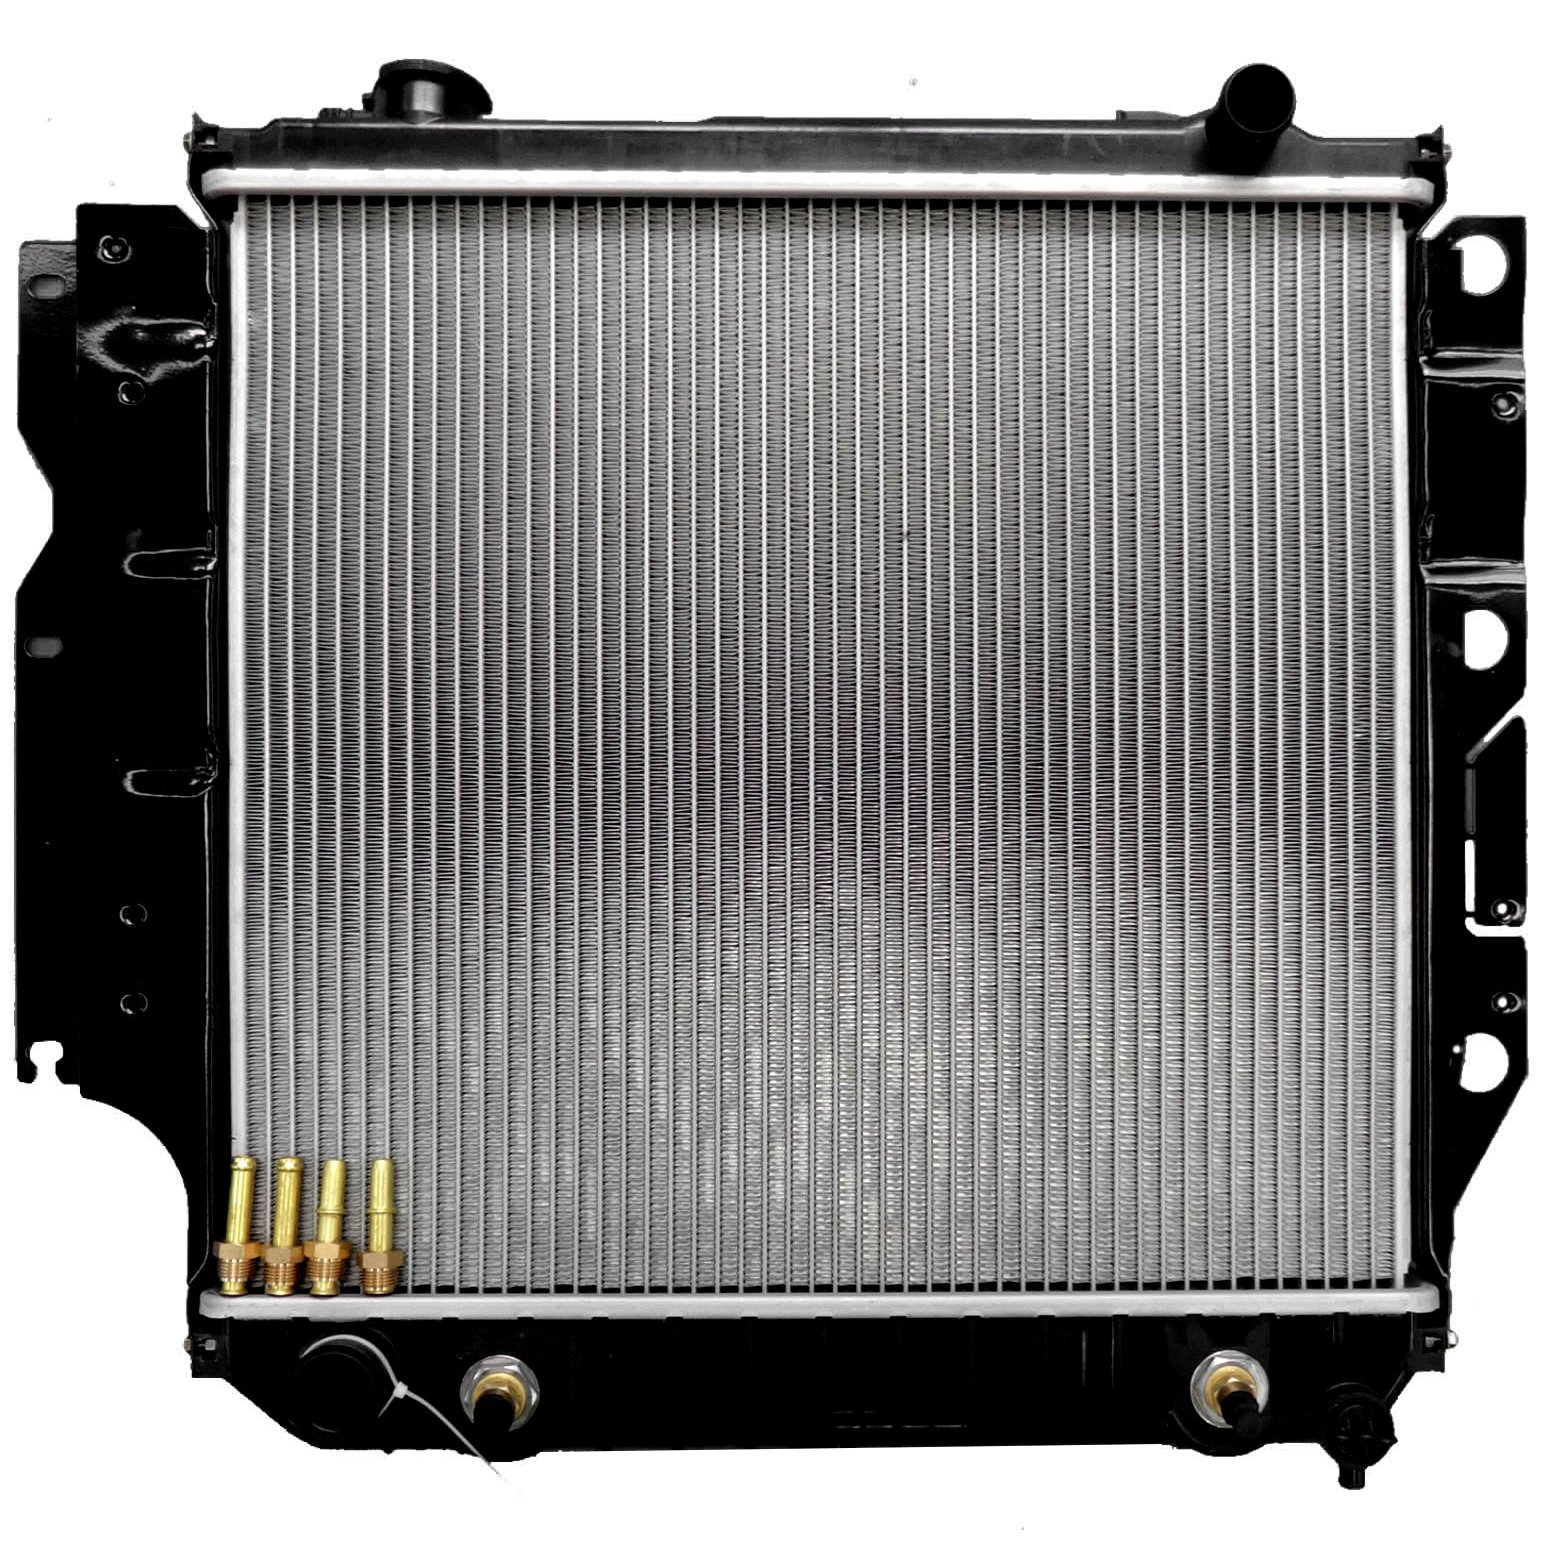 ECCPP 1682 Radiator fits for 1987-2006 Jeep Wrangler 65th Anniversary Edition/Rubicon/Unlimited/X/SE Sport Utility 2-Door 2.0L 4.0L by ECCPP (Image #1)